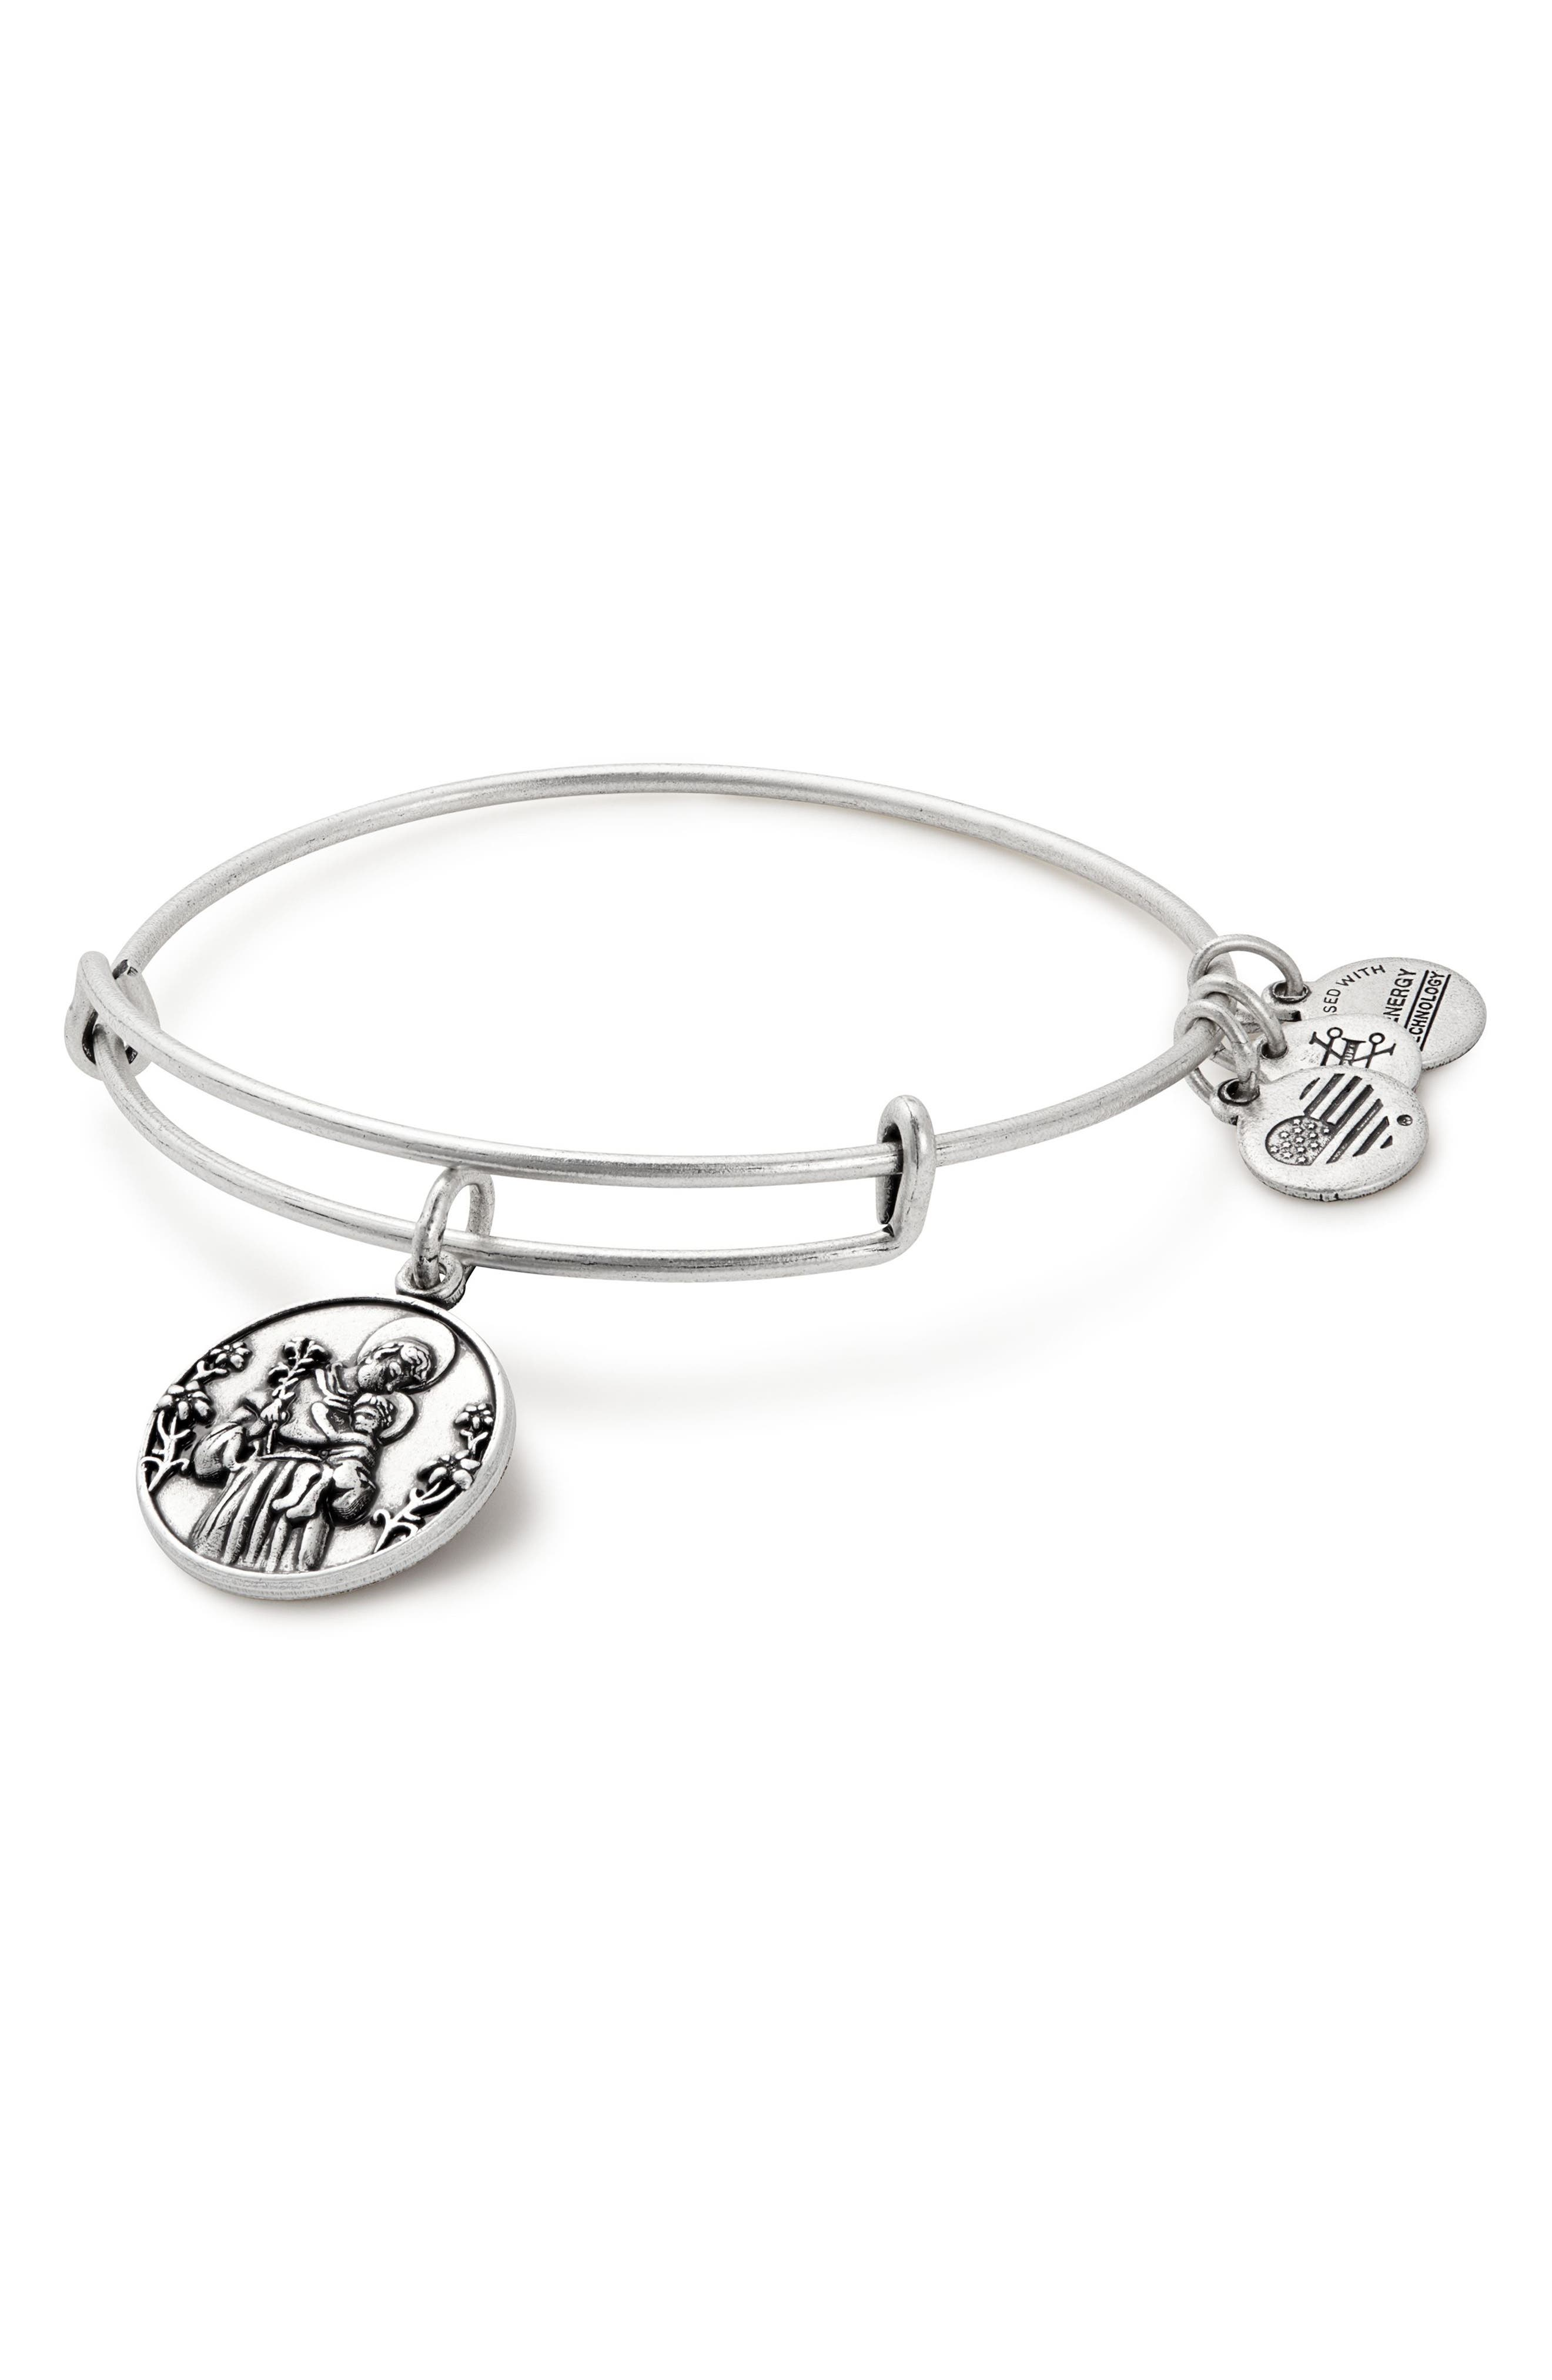 St. Anthony Adjustable Wire Bangle,                         Main,                         color, Silver